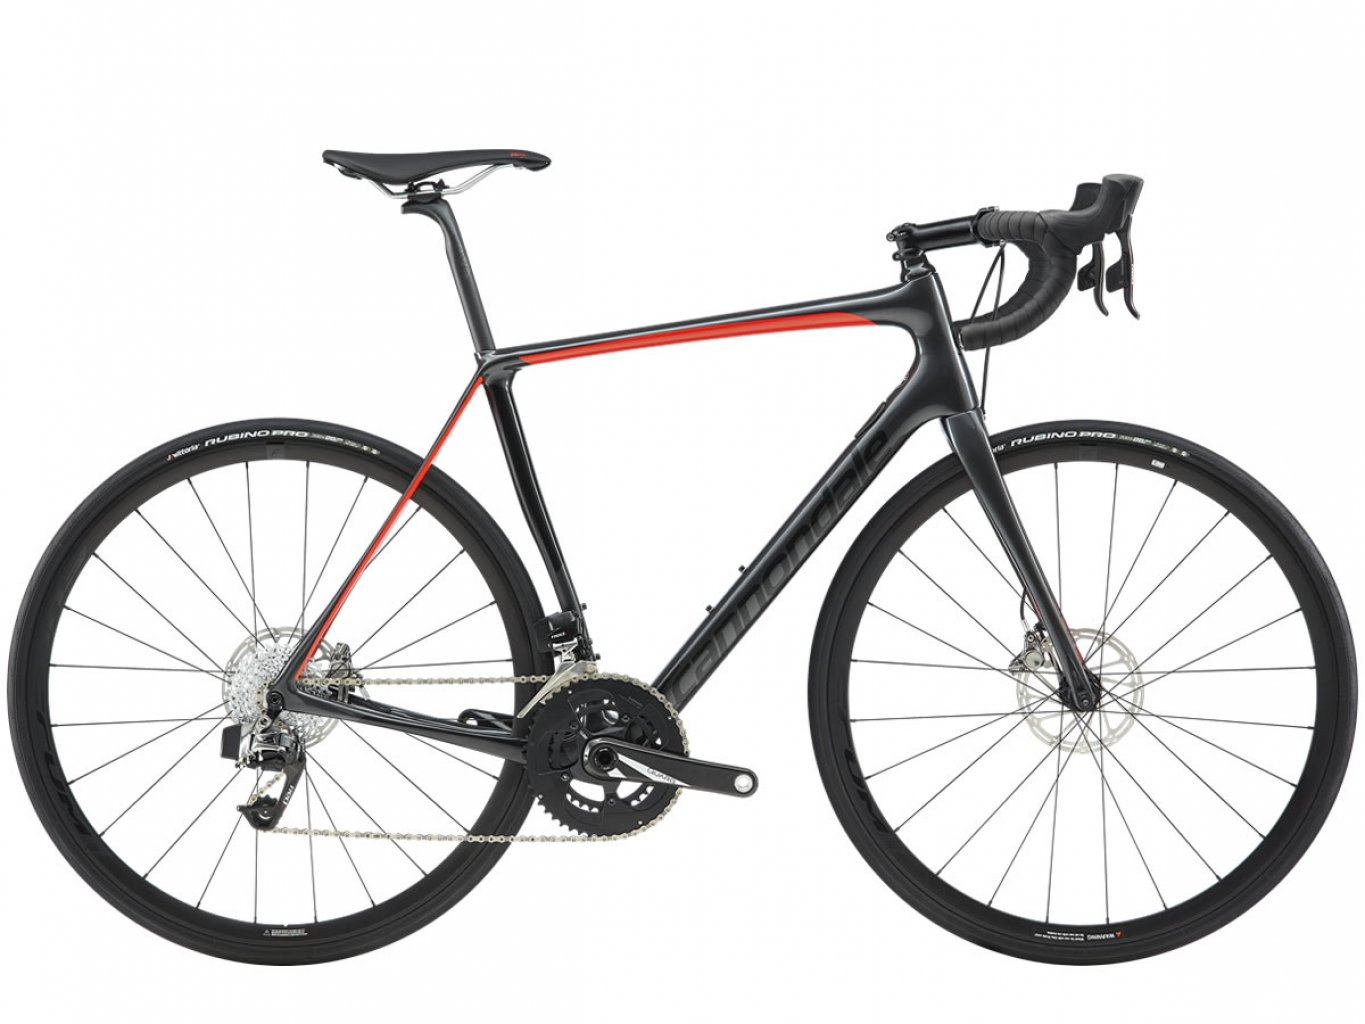 CANNONDALE Synapse Crb Disc Red eTap ARD 2019